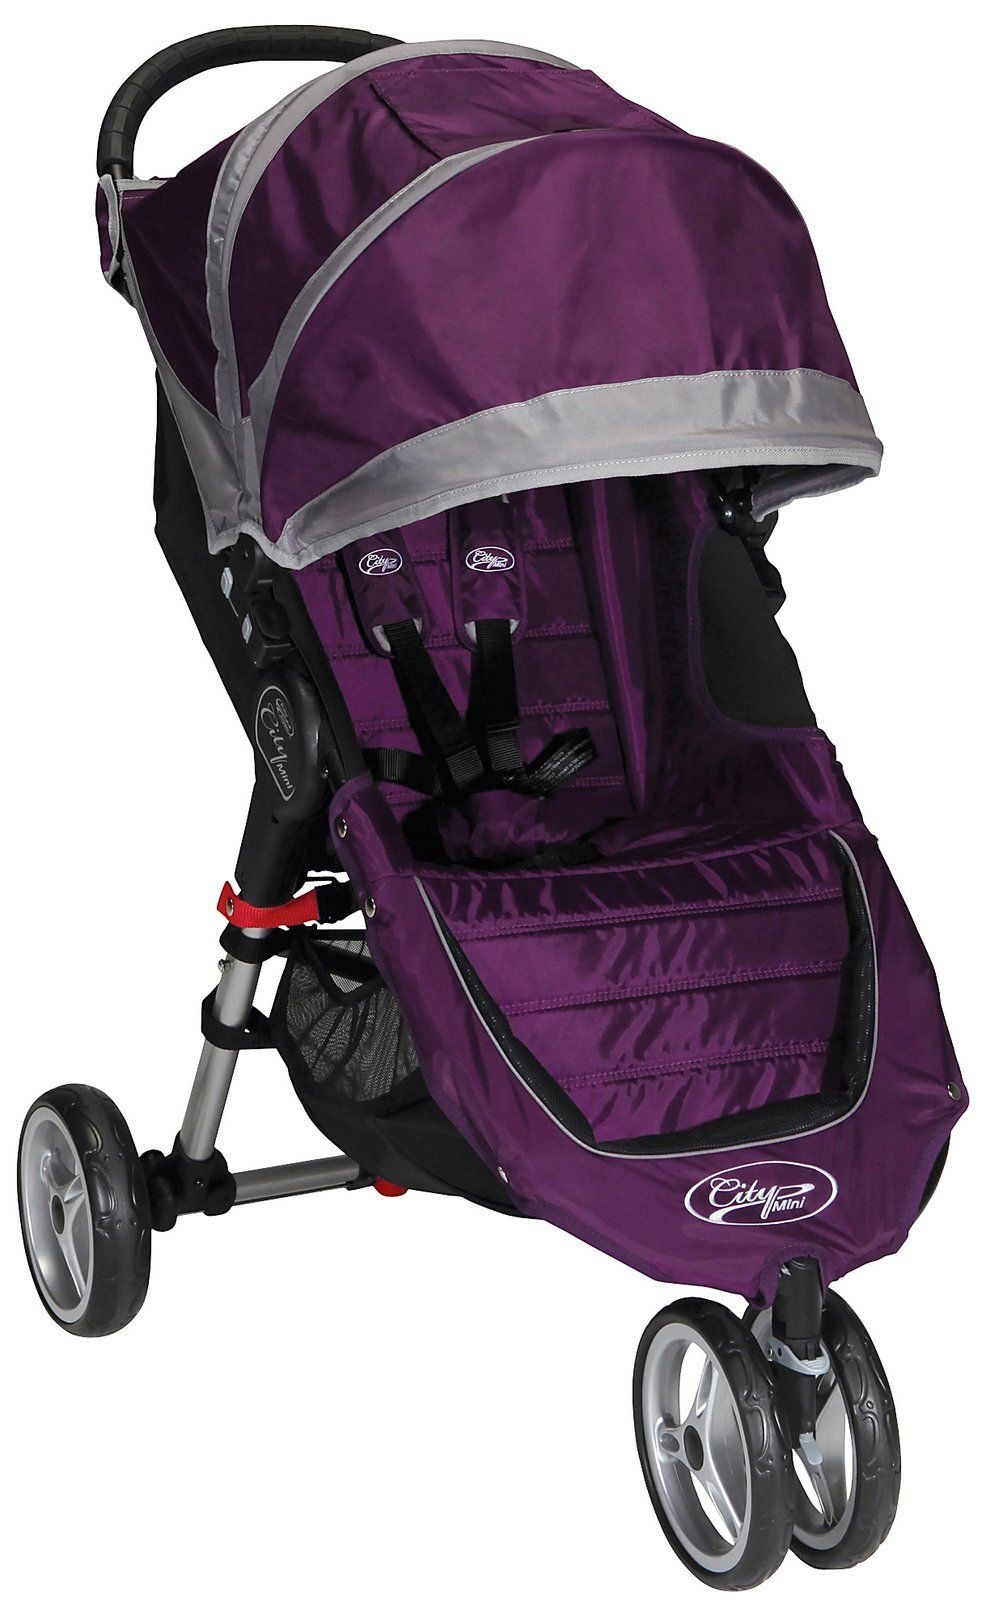 My favorite combo of colors in a stroller! Baby Jogger